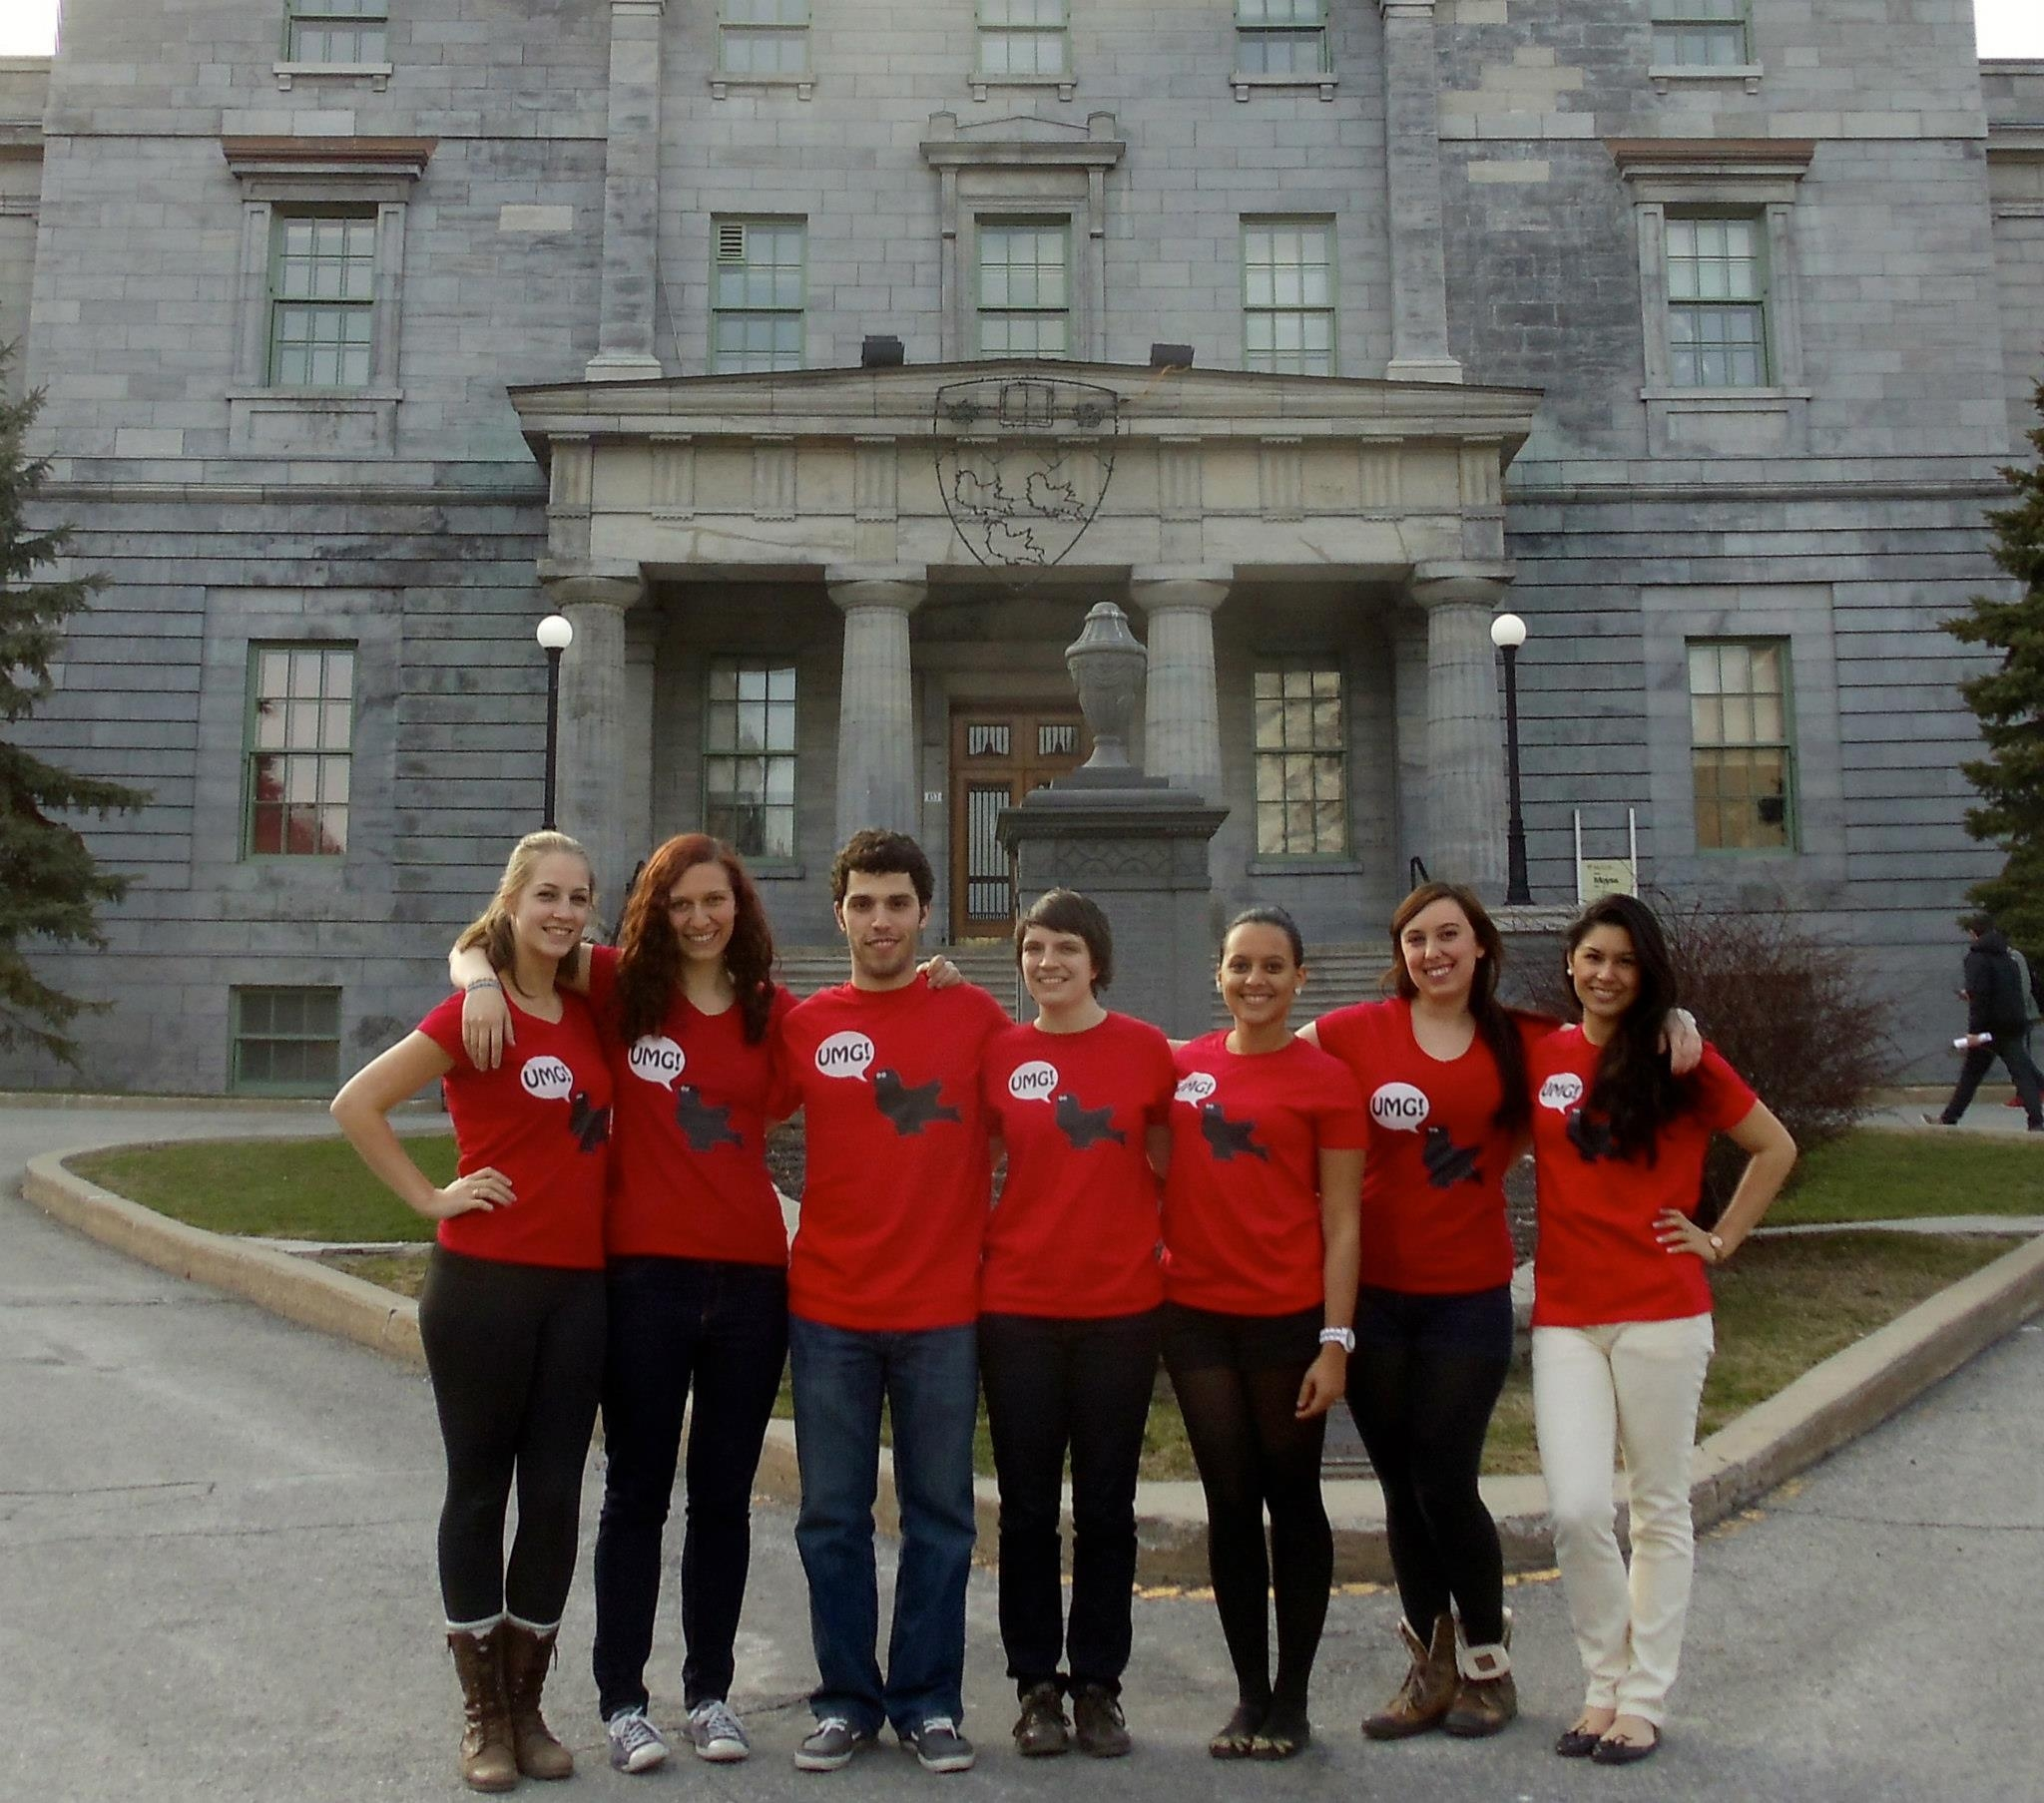 first iteration of the UMG team, 2012. from left: Erin Mitchell, Cara Neel, Max Blumberg, Katie Thompson, Melissa Williams, Becca Sheinbaum, Andrea Dumont.